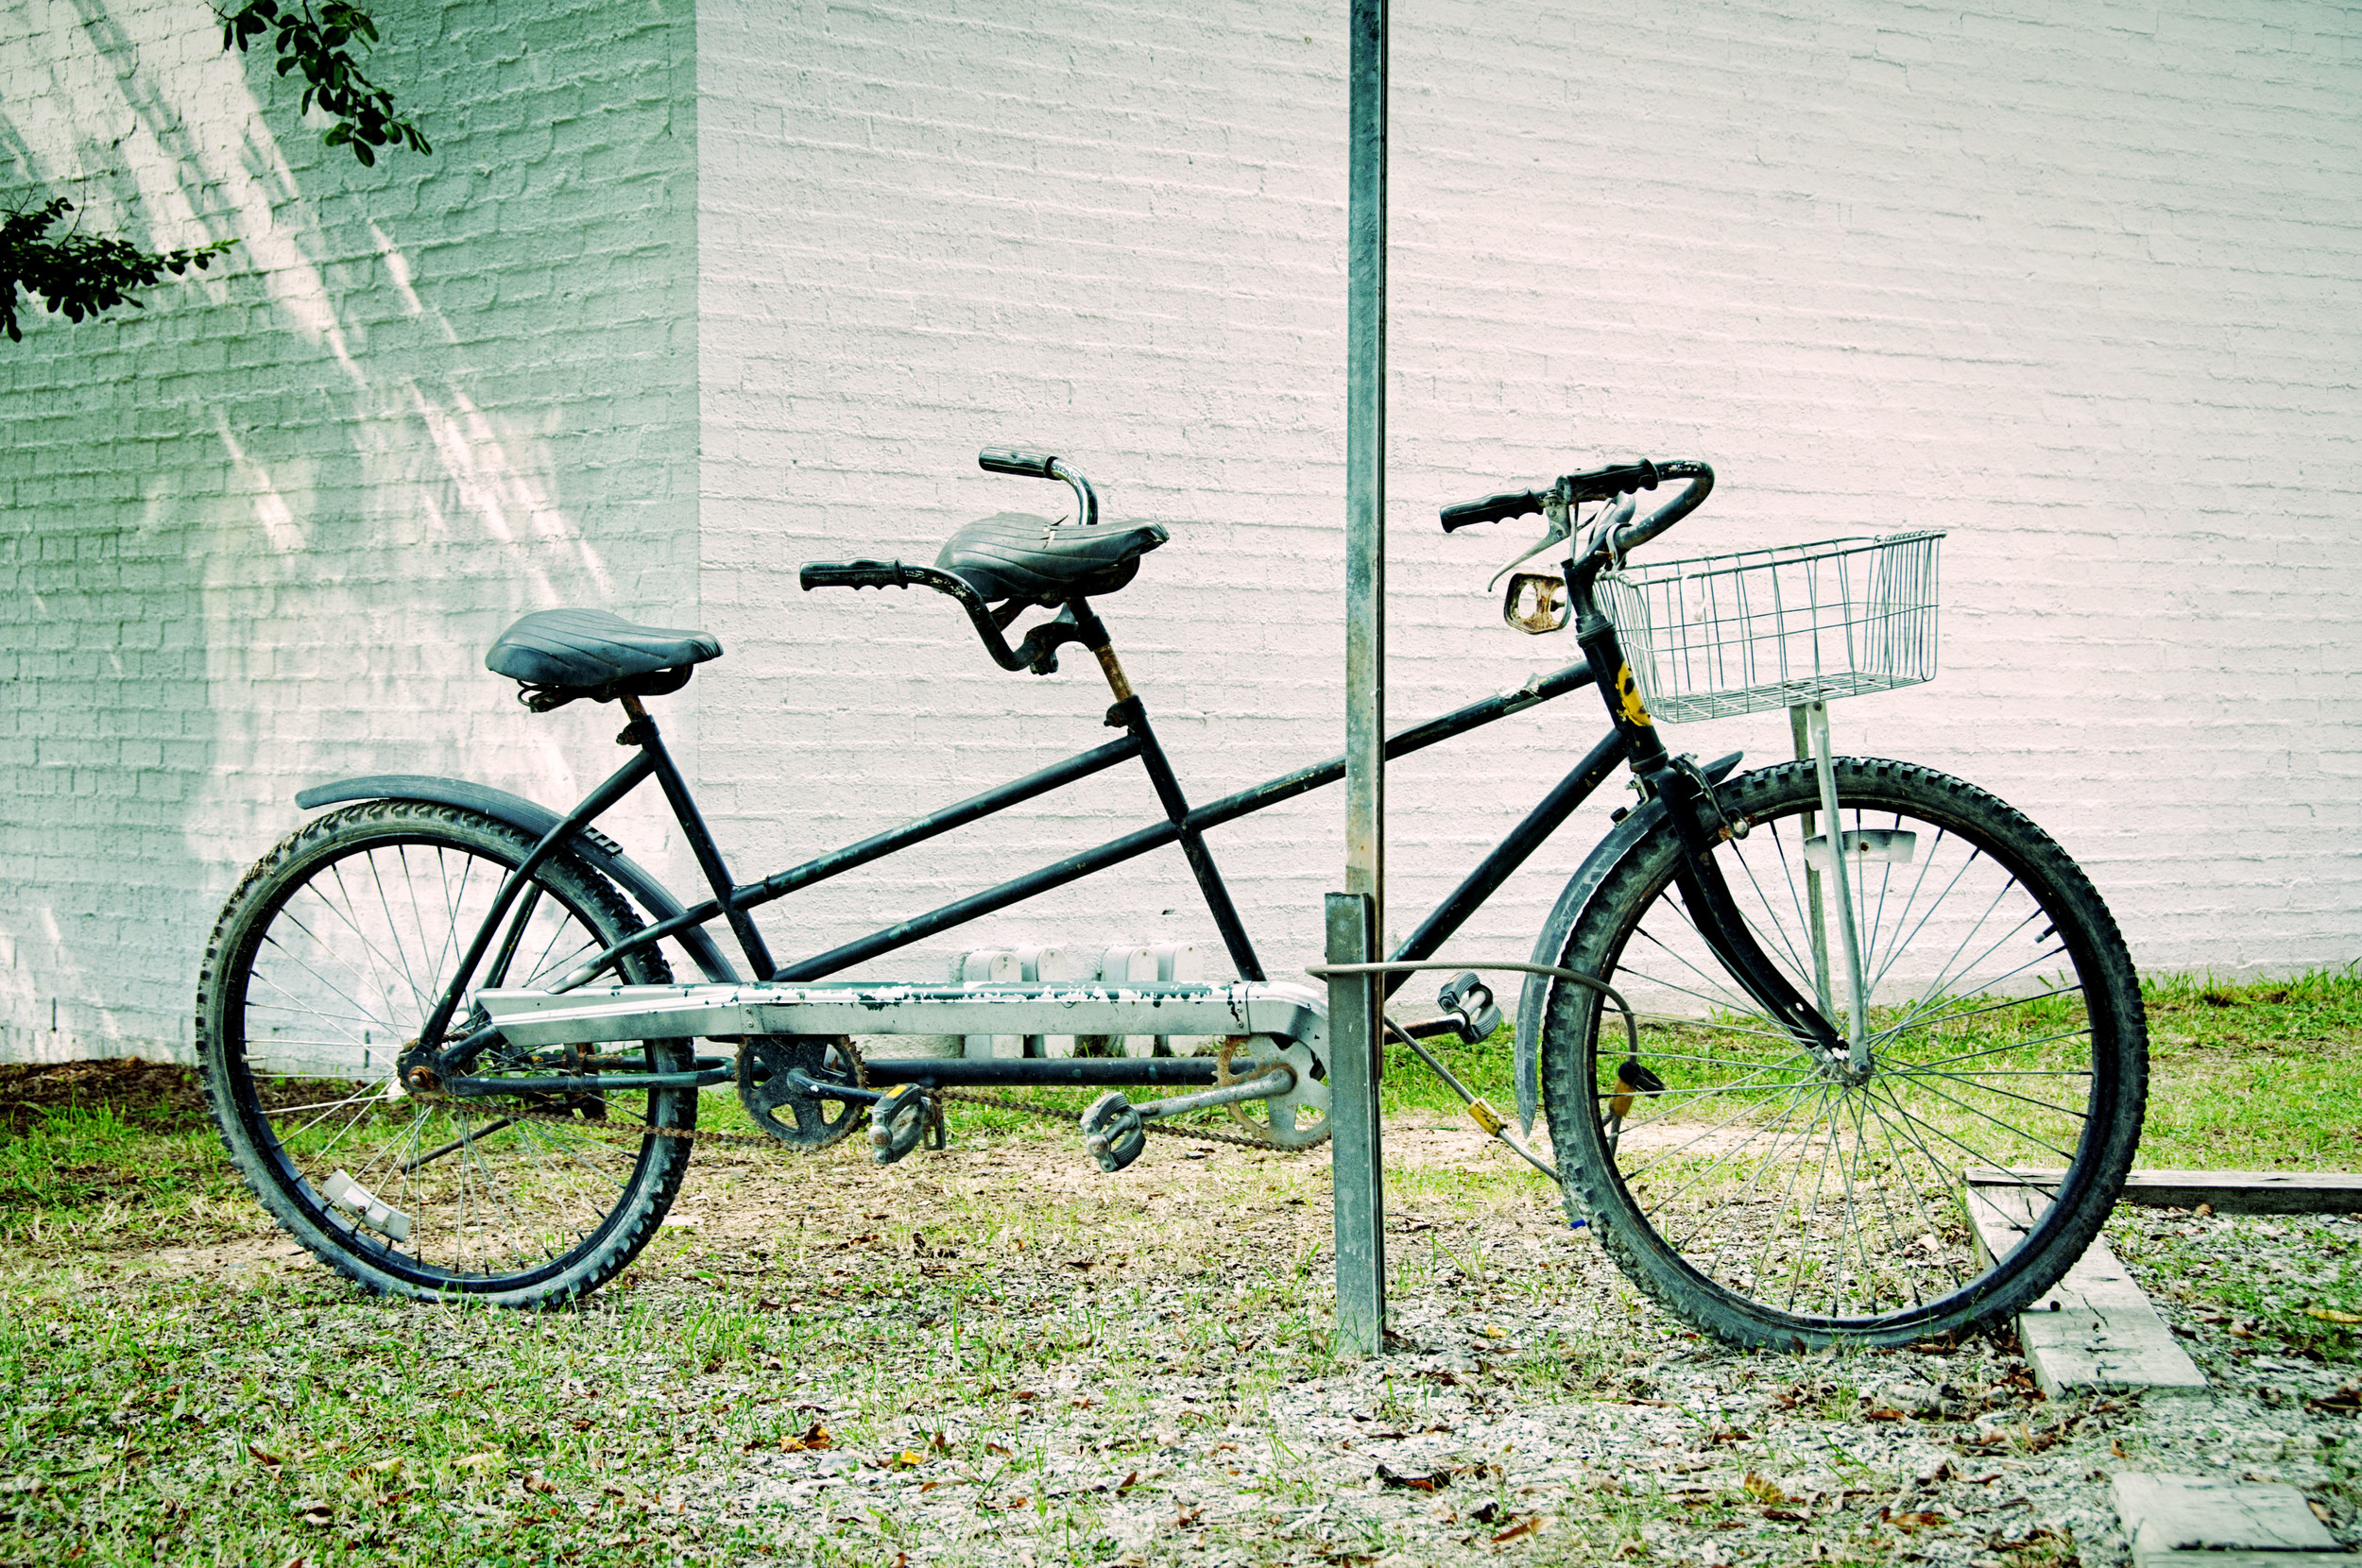 tandem bicycle in Carrboro, NC